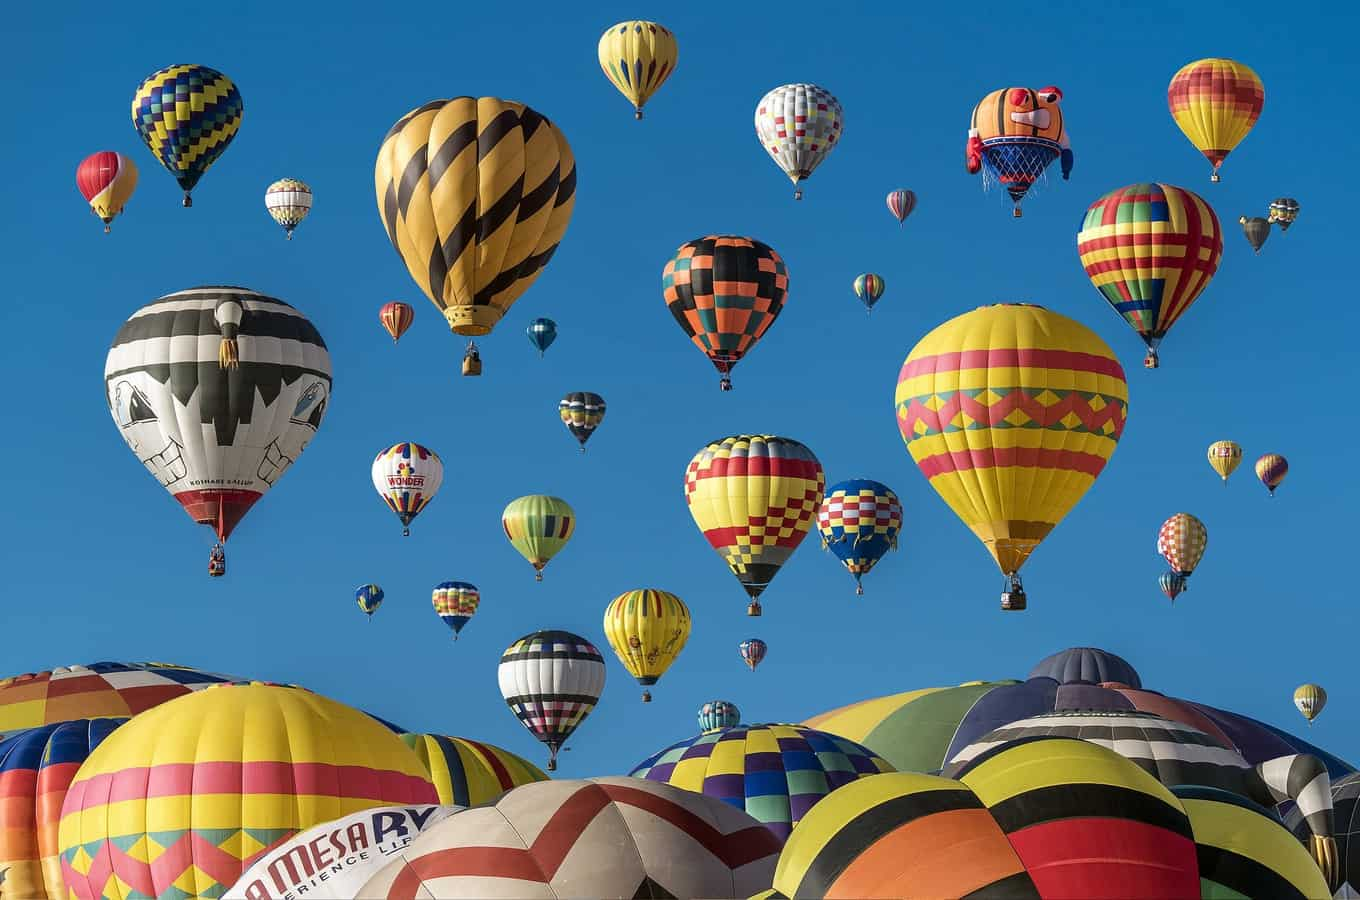 Balloon Festival Races are fun July events!